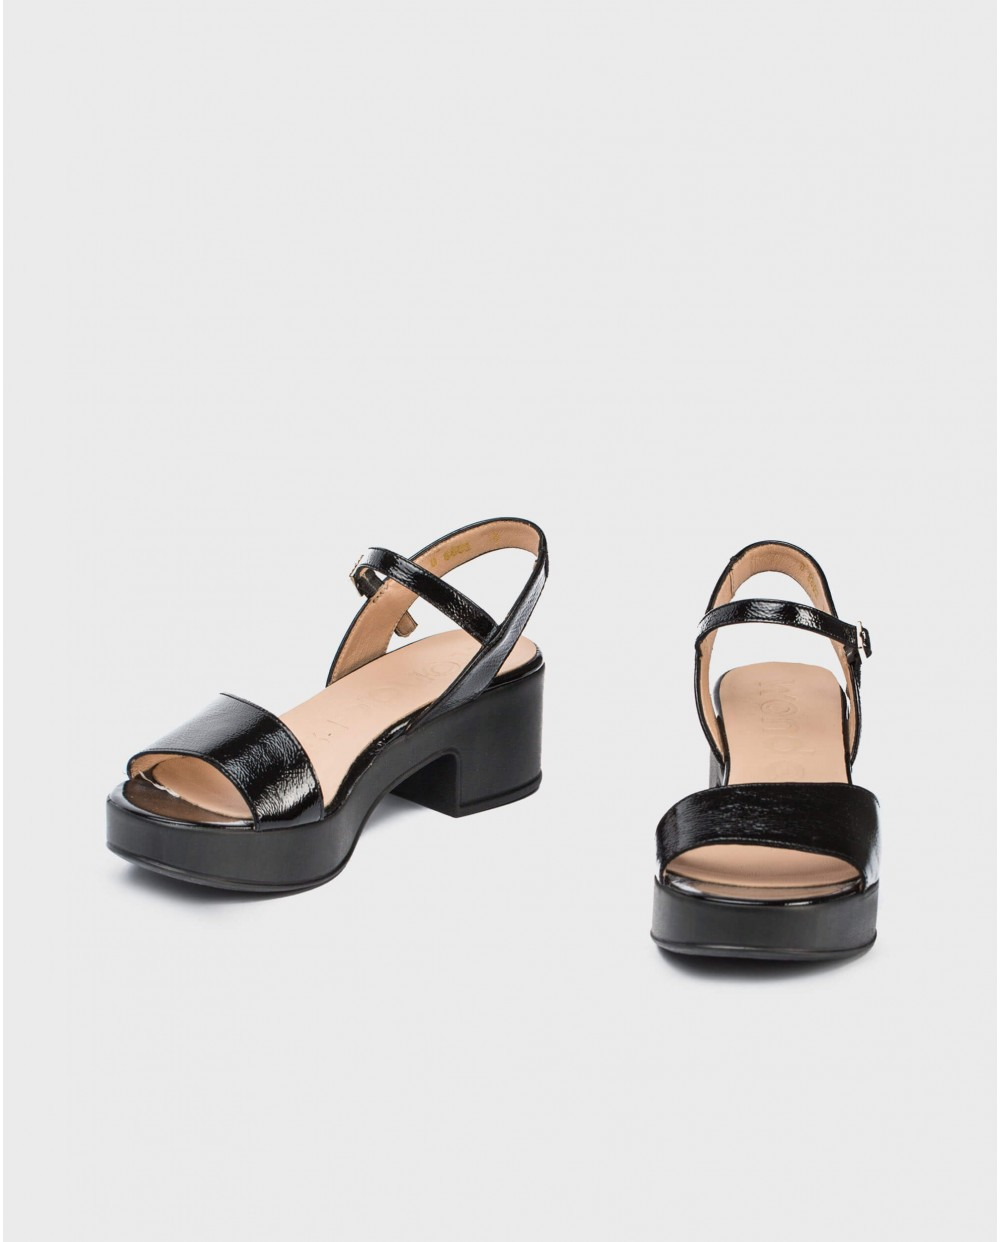 Wonders-Sandals-Leather wedge sandal